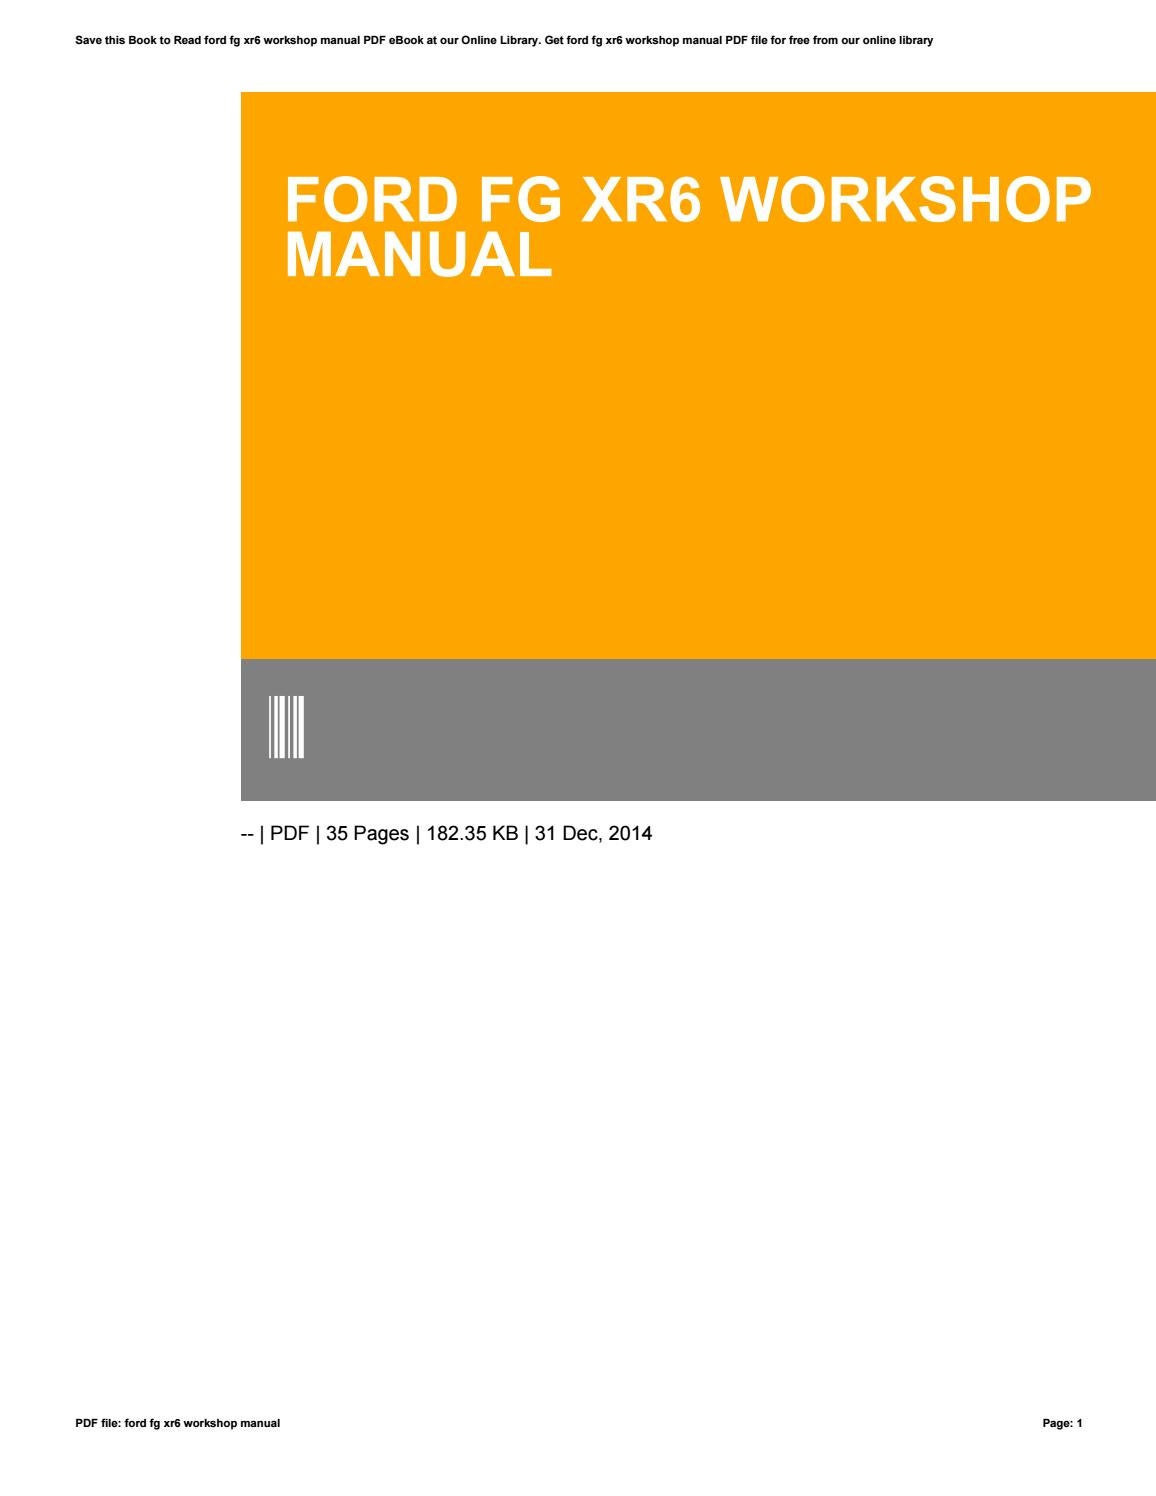 fg mkii xr6 workshop manual